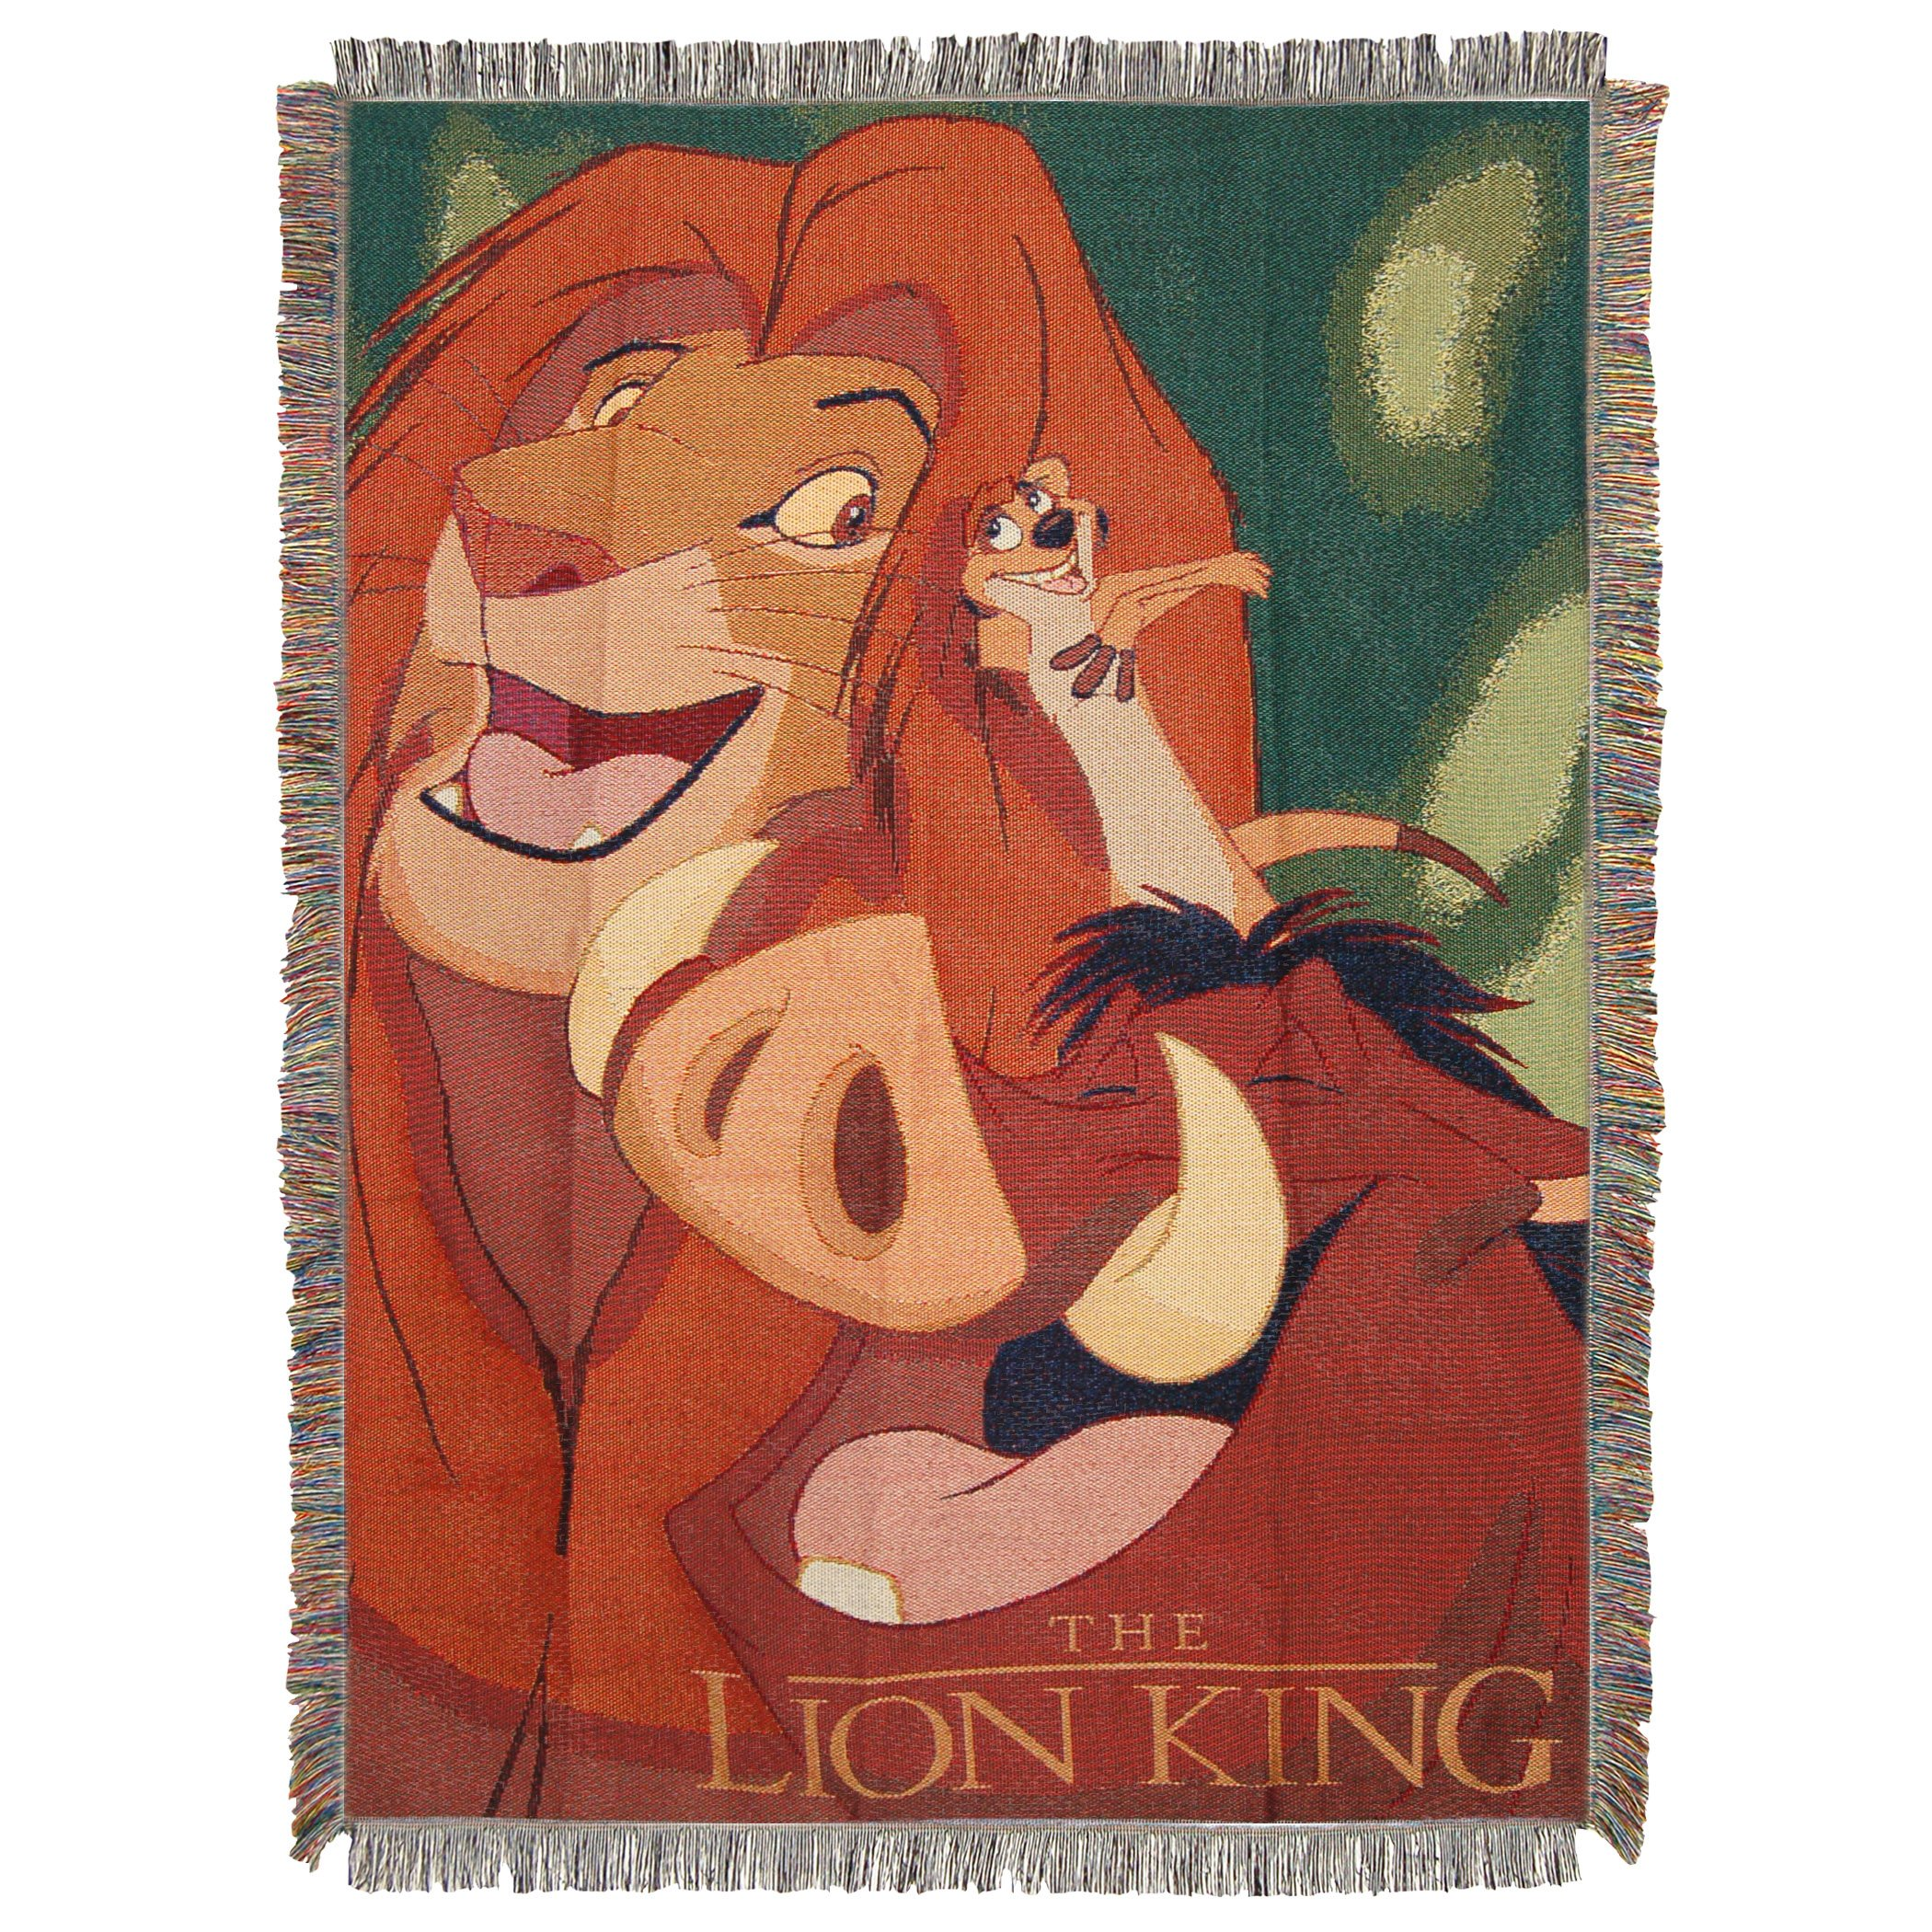 Disney's The Lion King, ''Jungle Friends'' Woven Tapestry Throw Blanket, 48'' x 60'', Multi Color by Disney